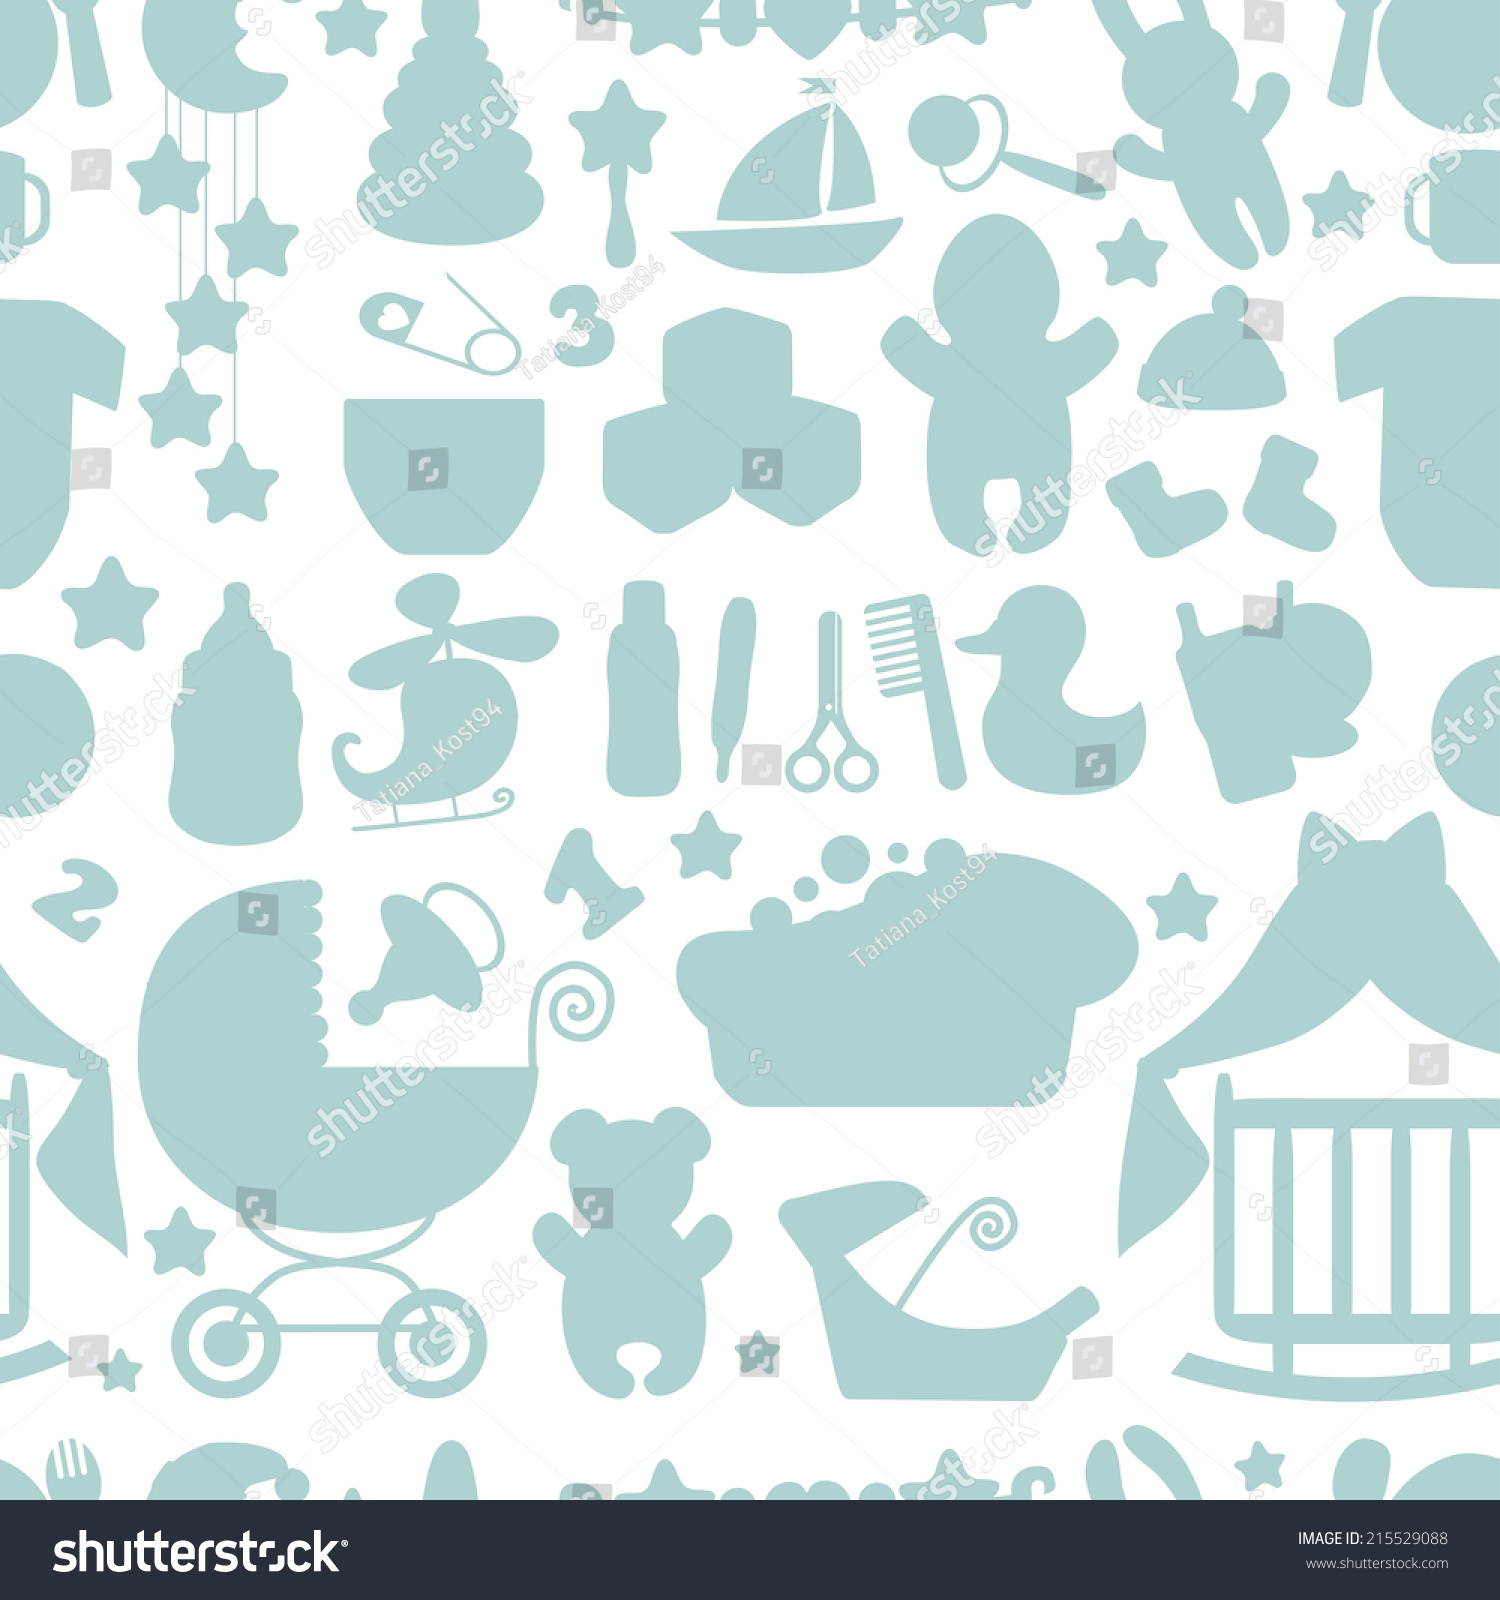 Baby boy background wallpaper baby boy background images baby boy - Sweet Newborn Seamless Pattern Baby Boy Cartoon Design Elements For Fabric Background